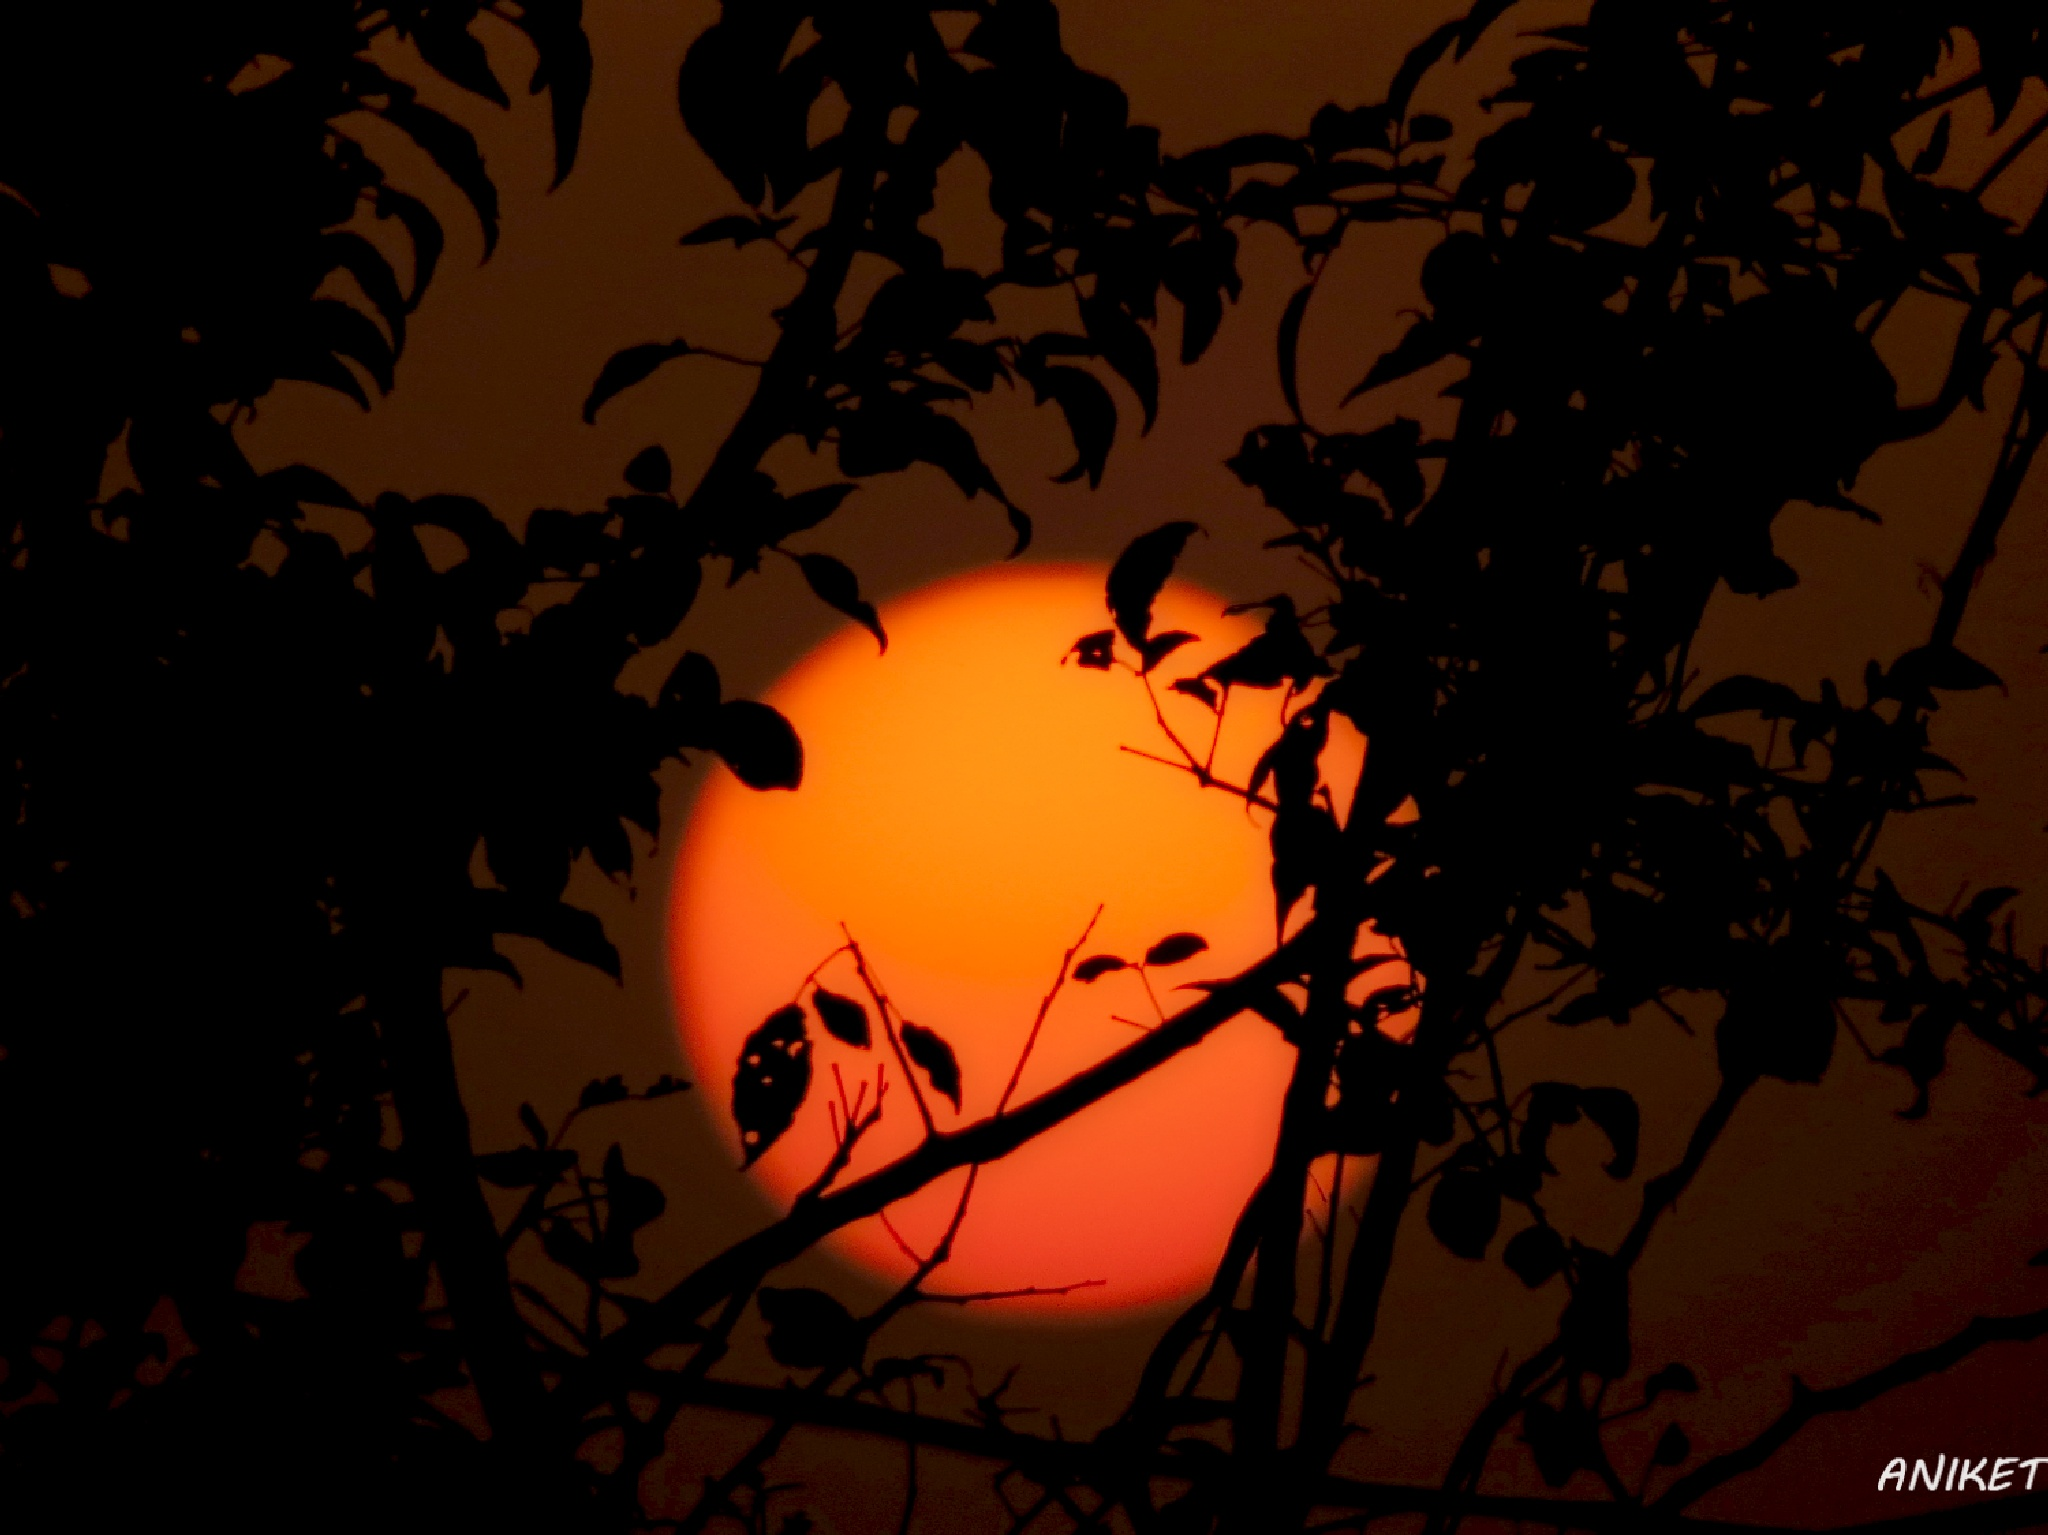 Sunset by Aniket